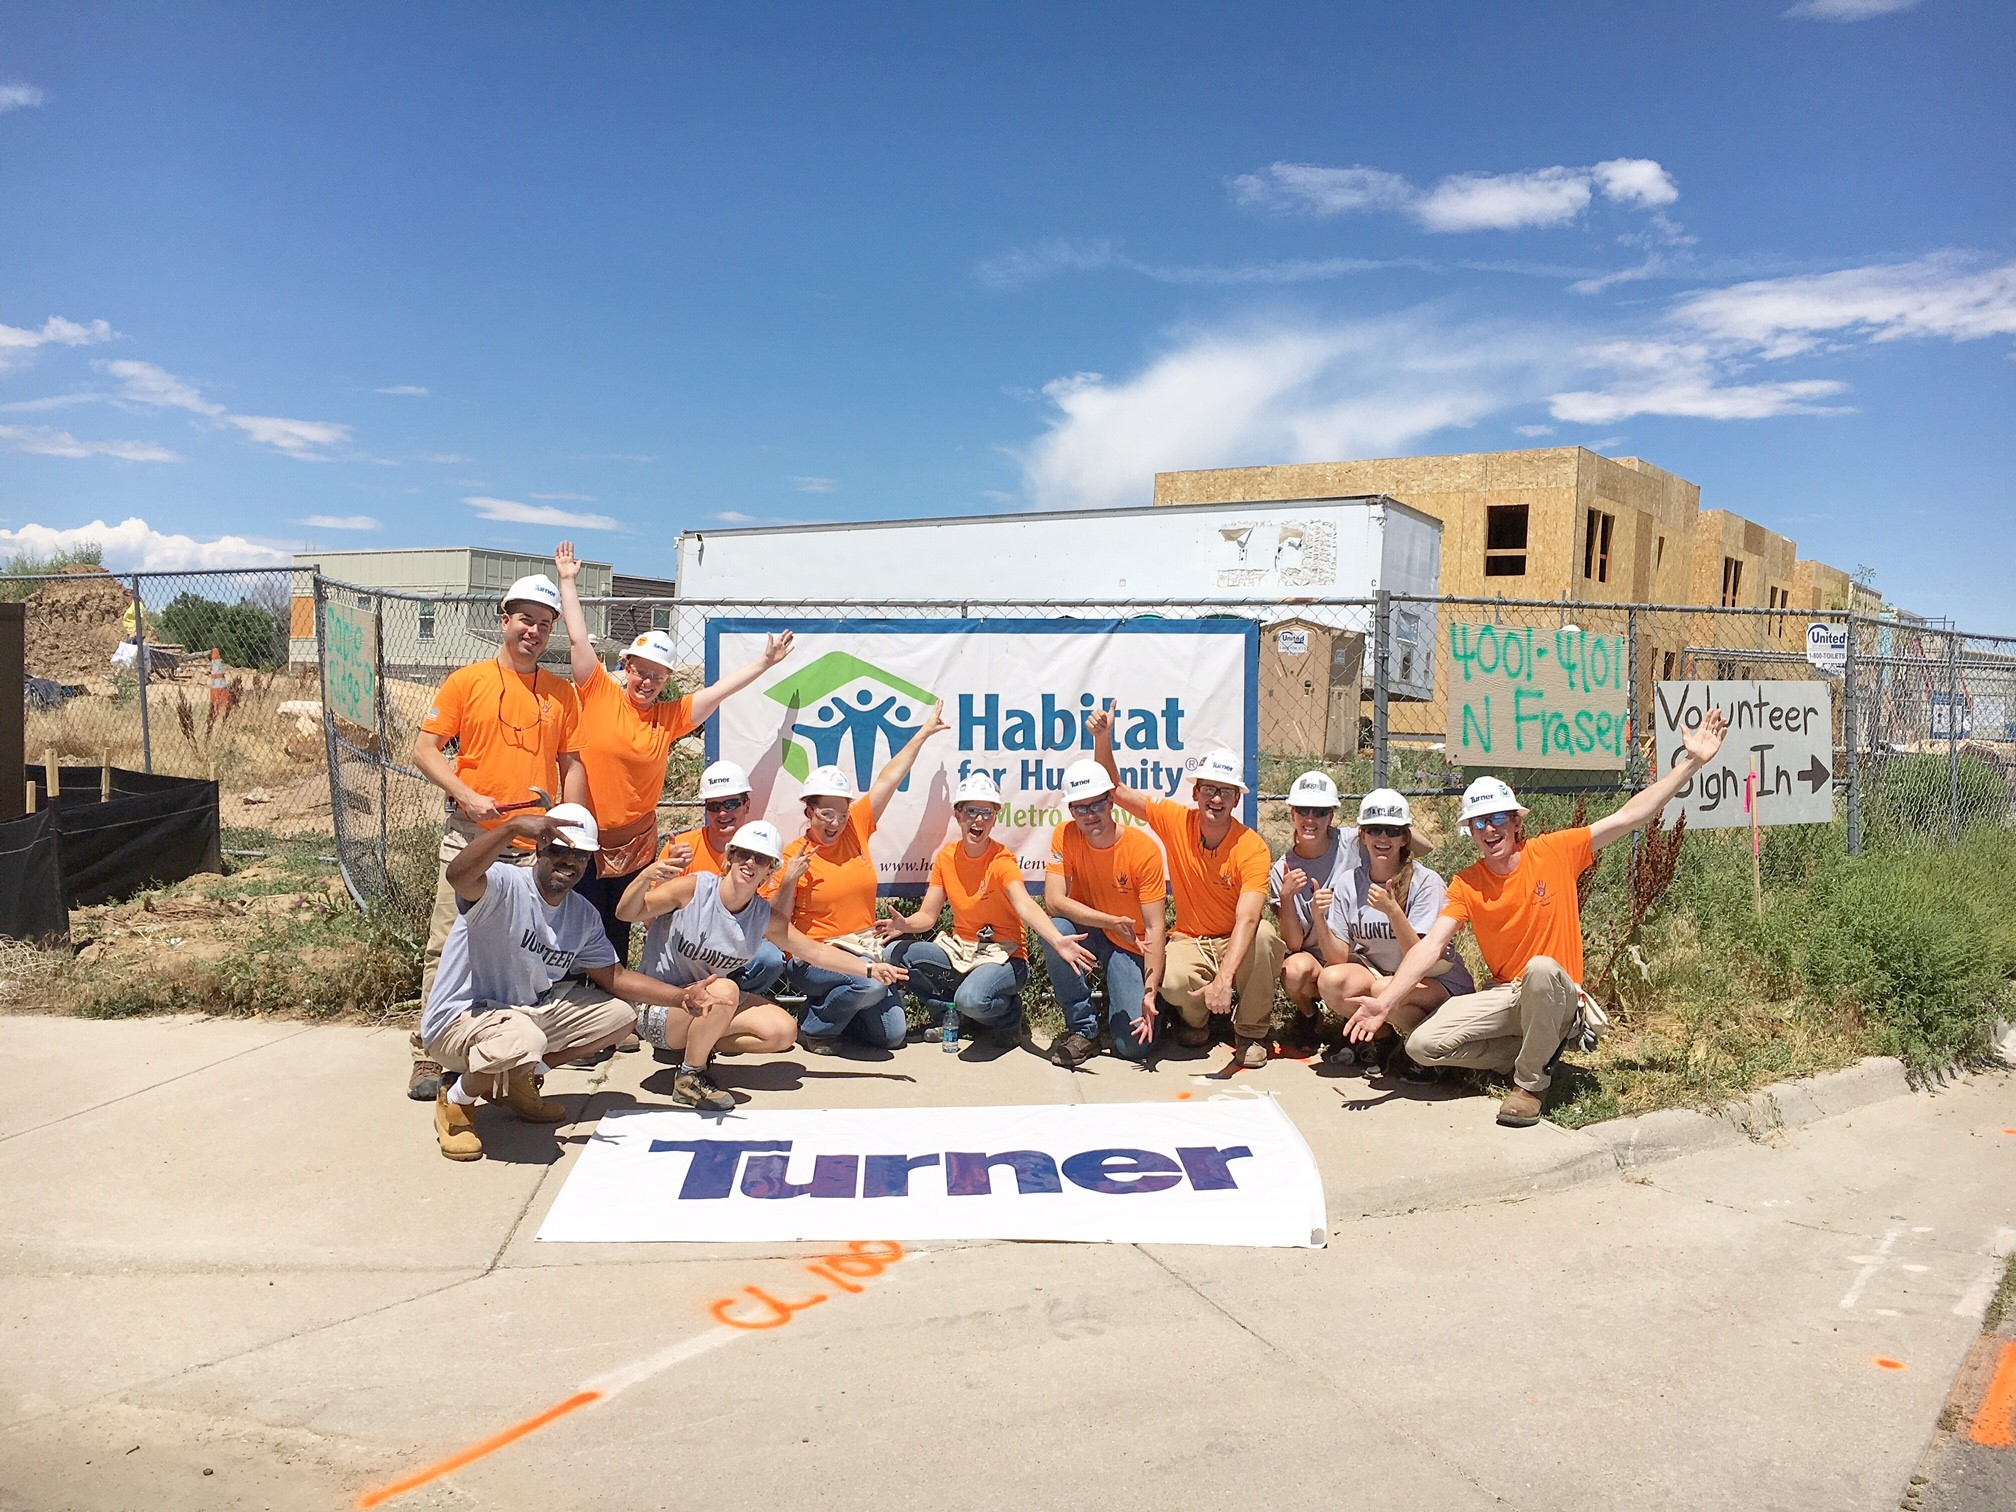 Turner construction teams with flatiron for habitat for for Construction habitat